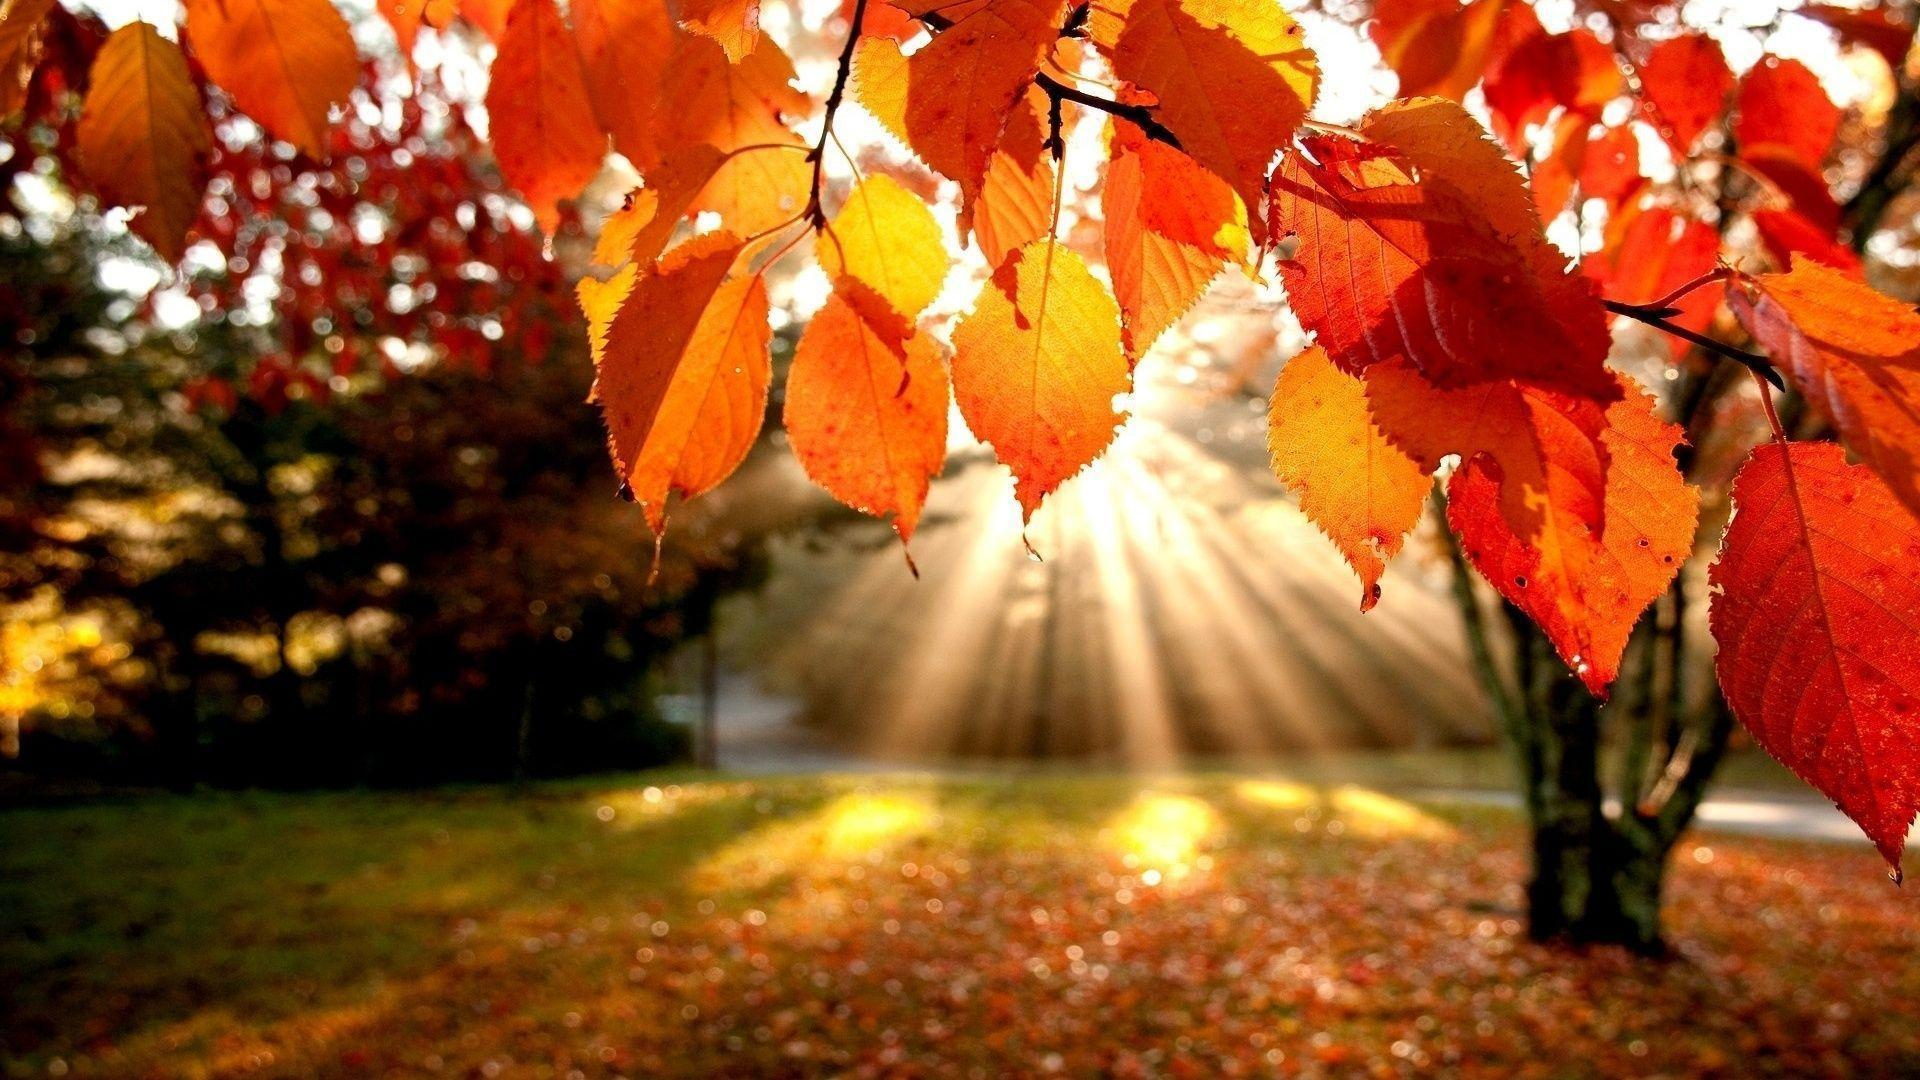 Hd Fall Desktop Wallpapers Top Free Hd Fall Desktop